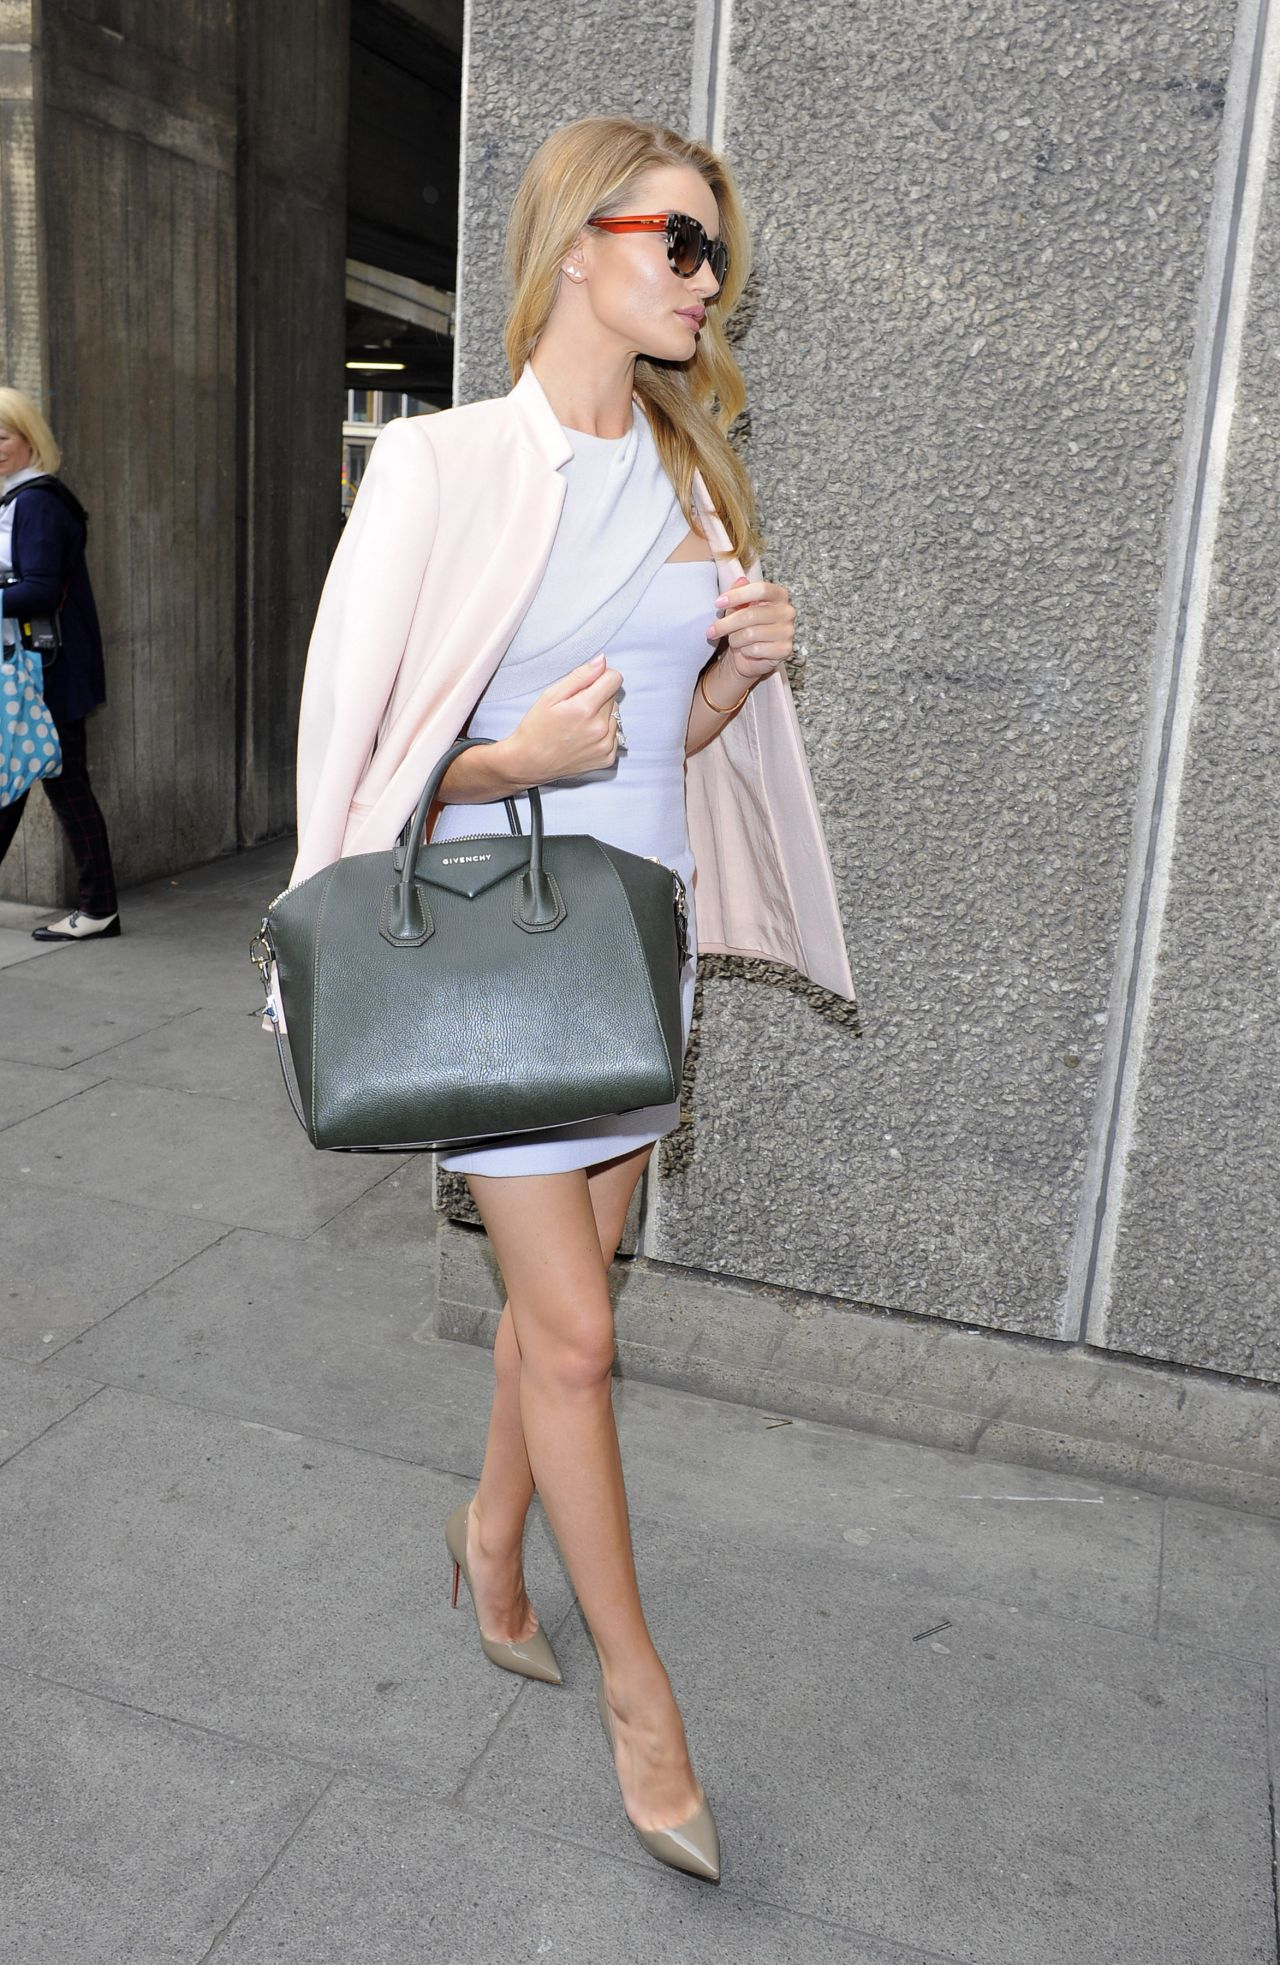 Rosie Huntington-Whiteley - The Vogue Festival 2014 in London